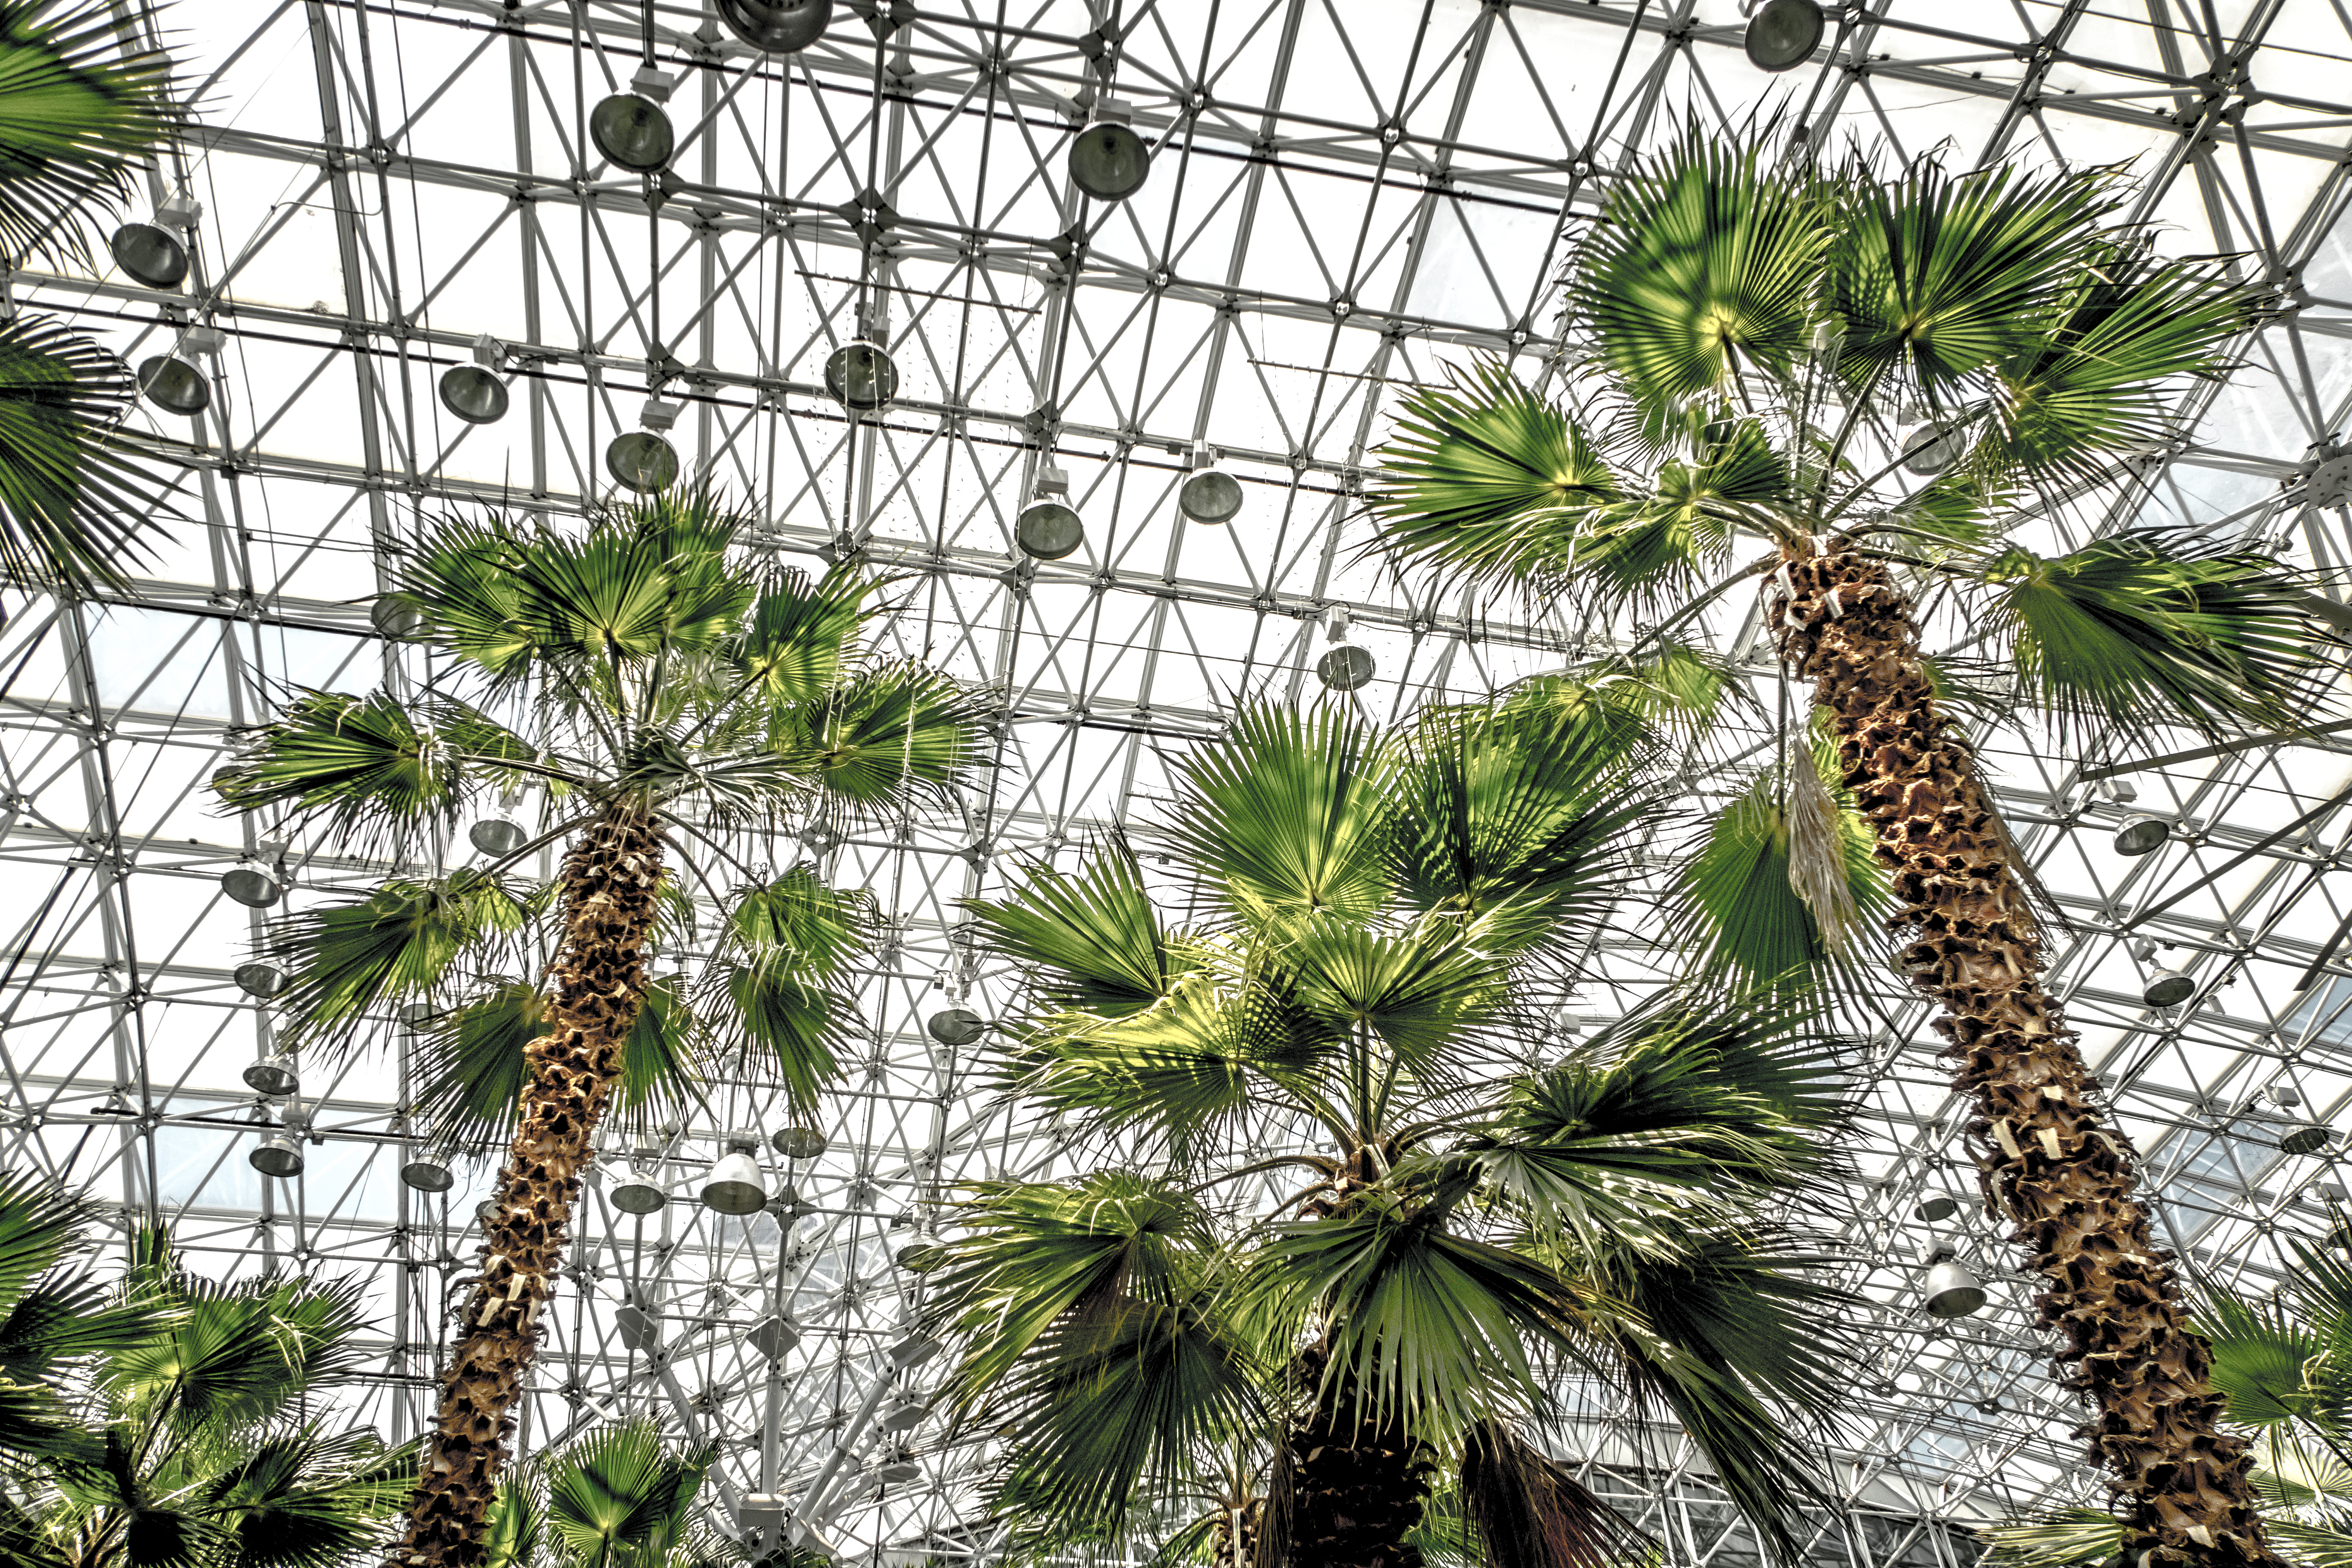 Looking up at the roof a glass atrium filled with towering palm trees and other tropical vegetation.